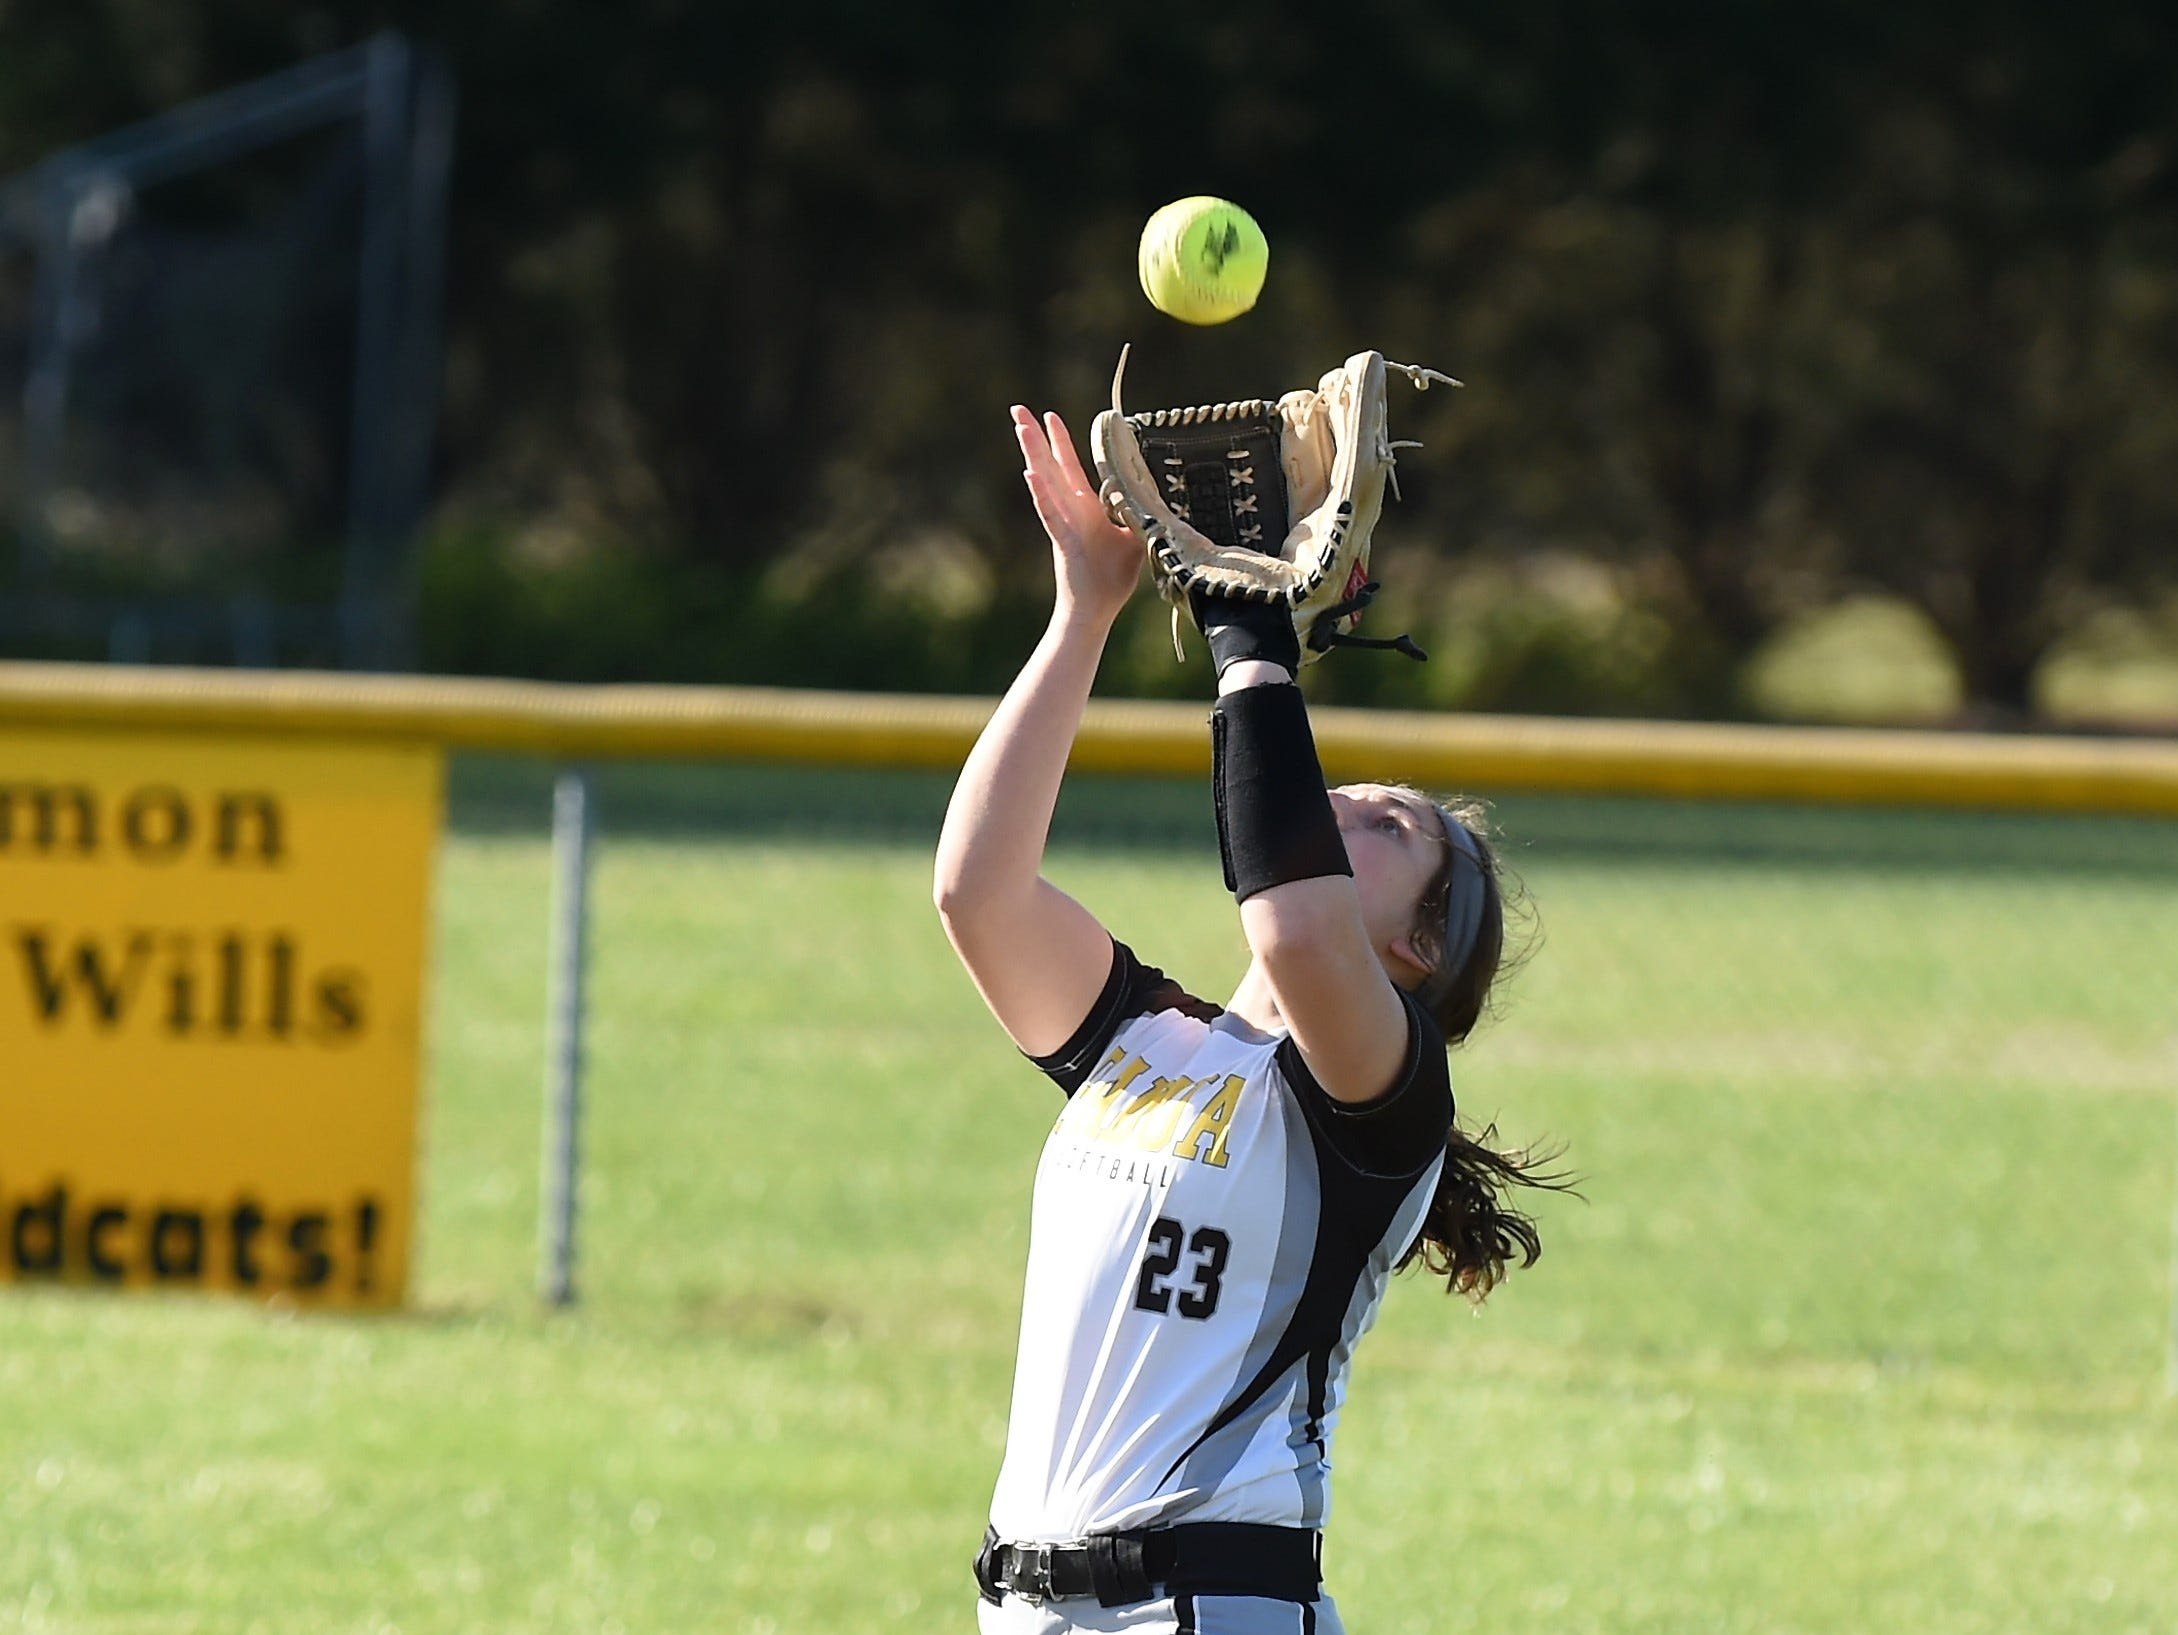 Padua's Caitlin Donnelly makes a catch against Delmar on Monday, April 15, 2019. The Wildcats defeated Padua Academy, 6-2.